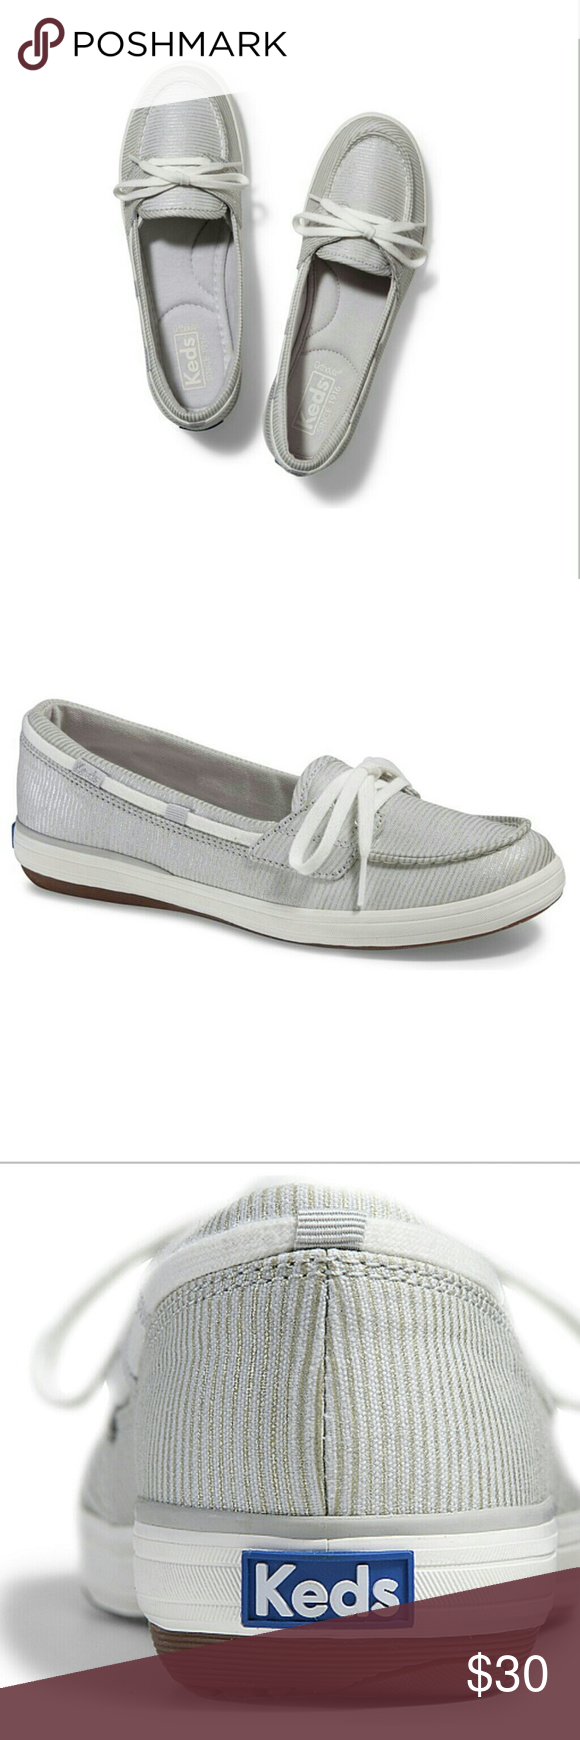 87491918b6 Brand New Keds Metallic Glimmer Stripe Boat Shoes These gorgeous boat shoes  have metallic silver stripes. Brand new -- I ordered them online, ...